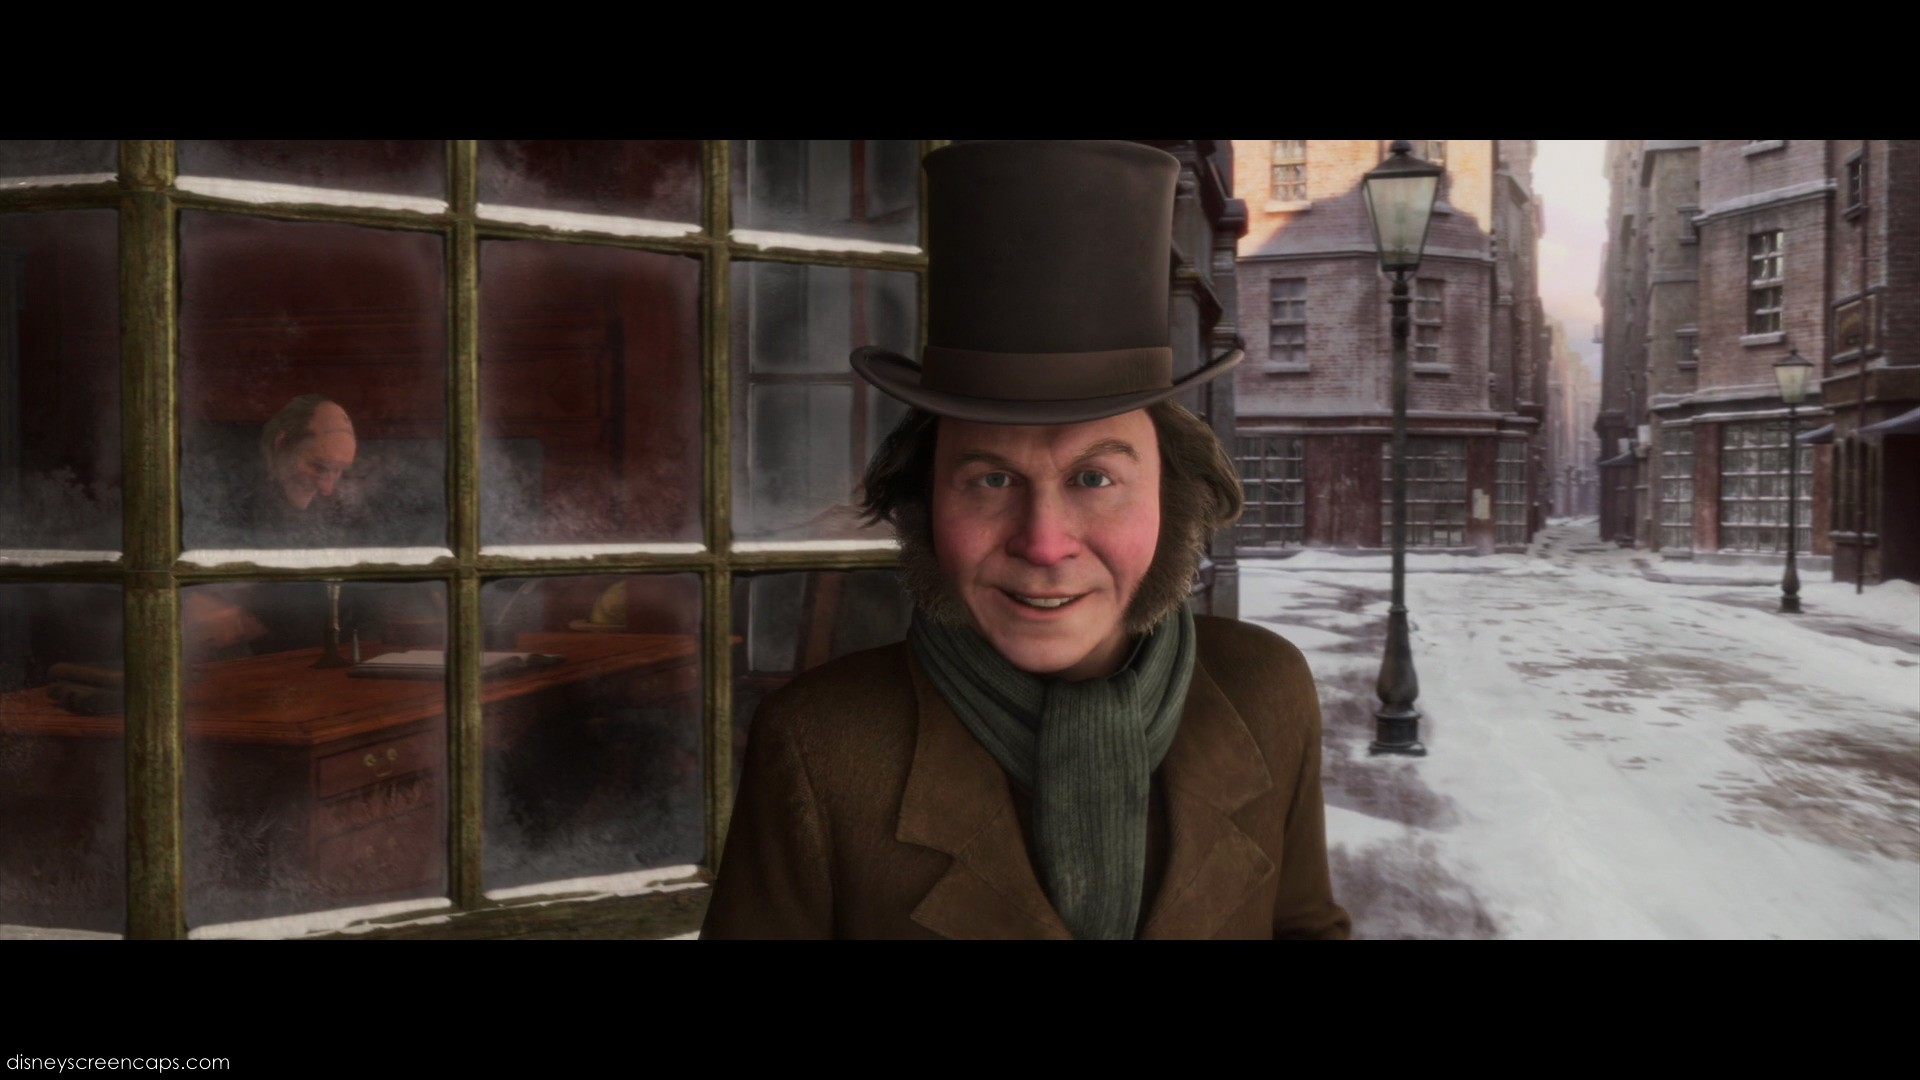 Bob Cratchit